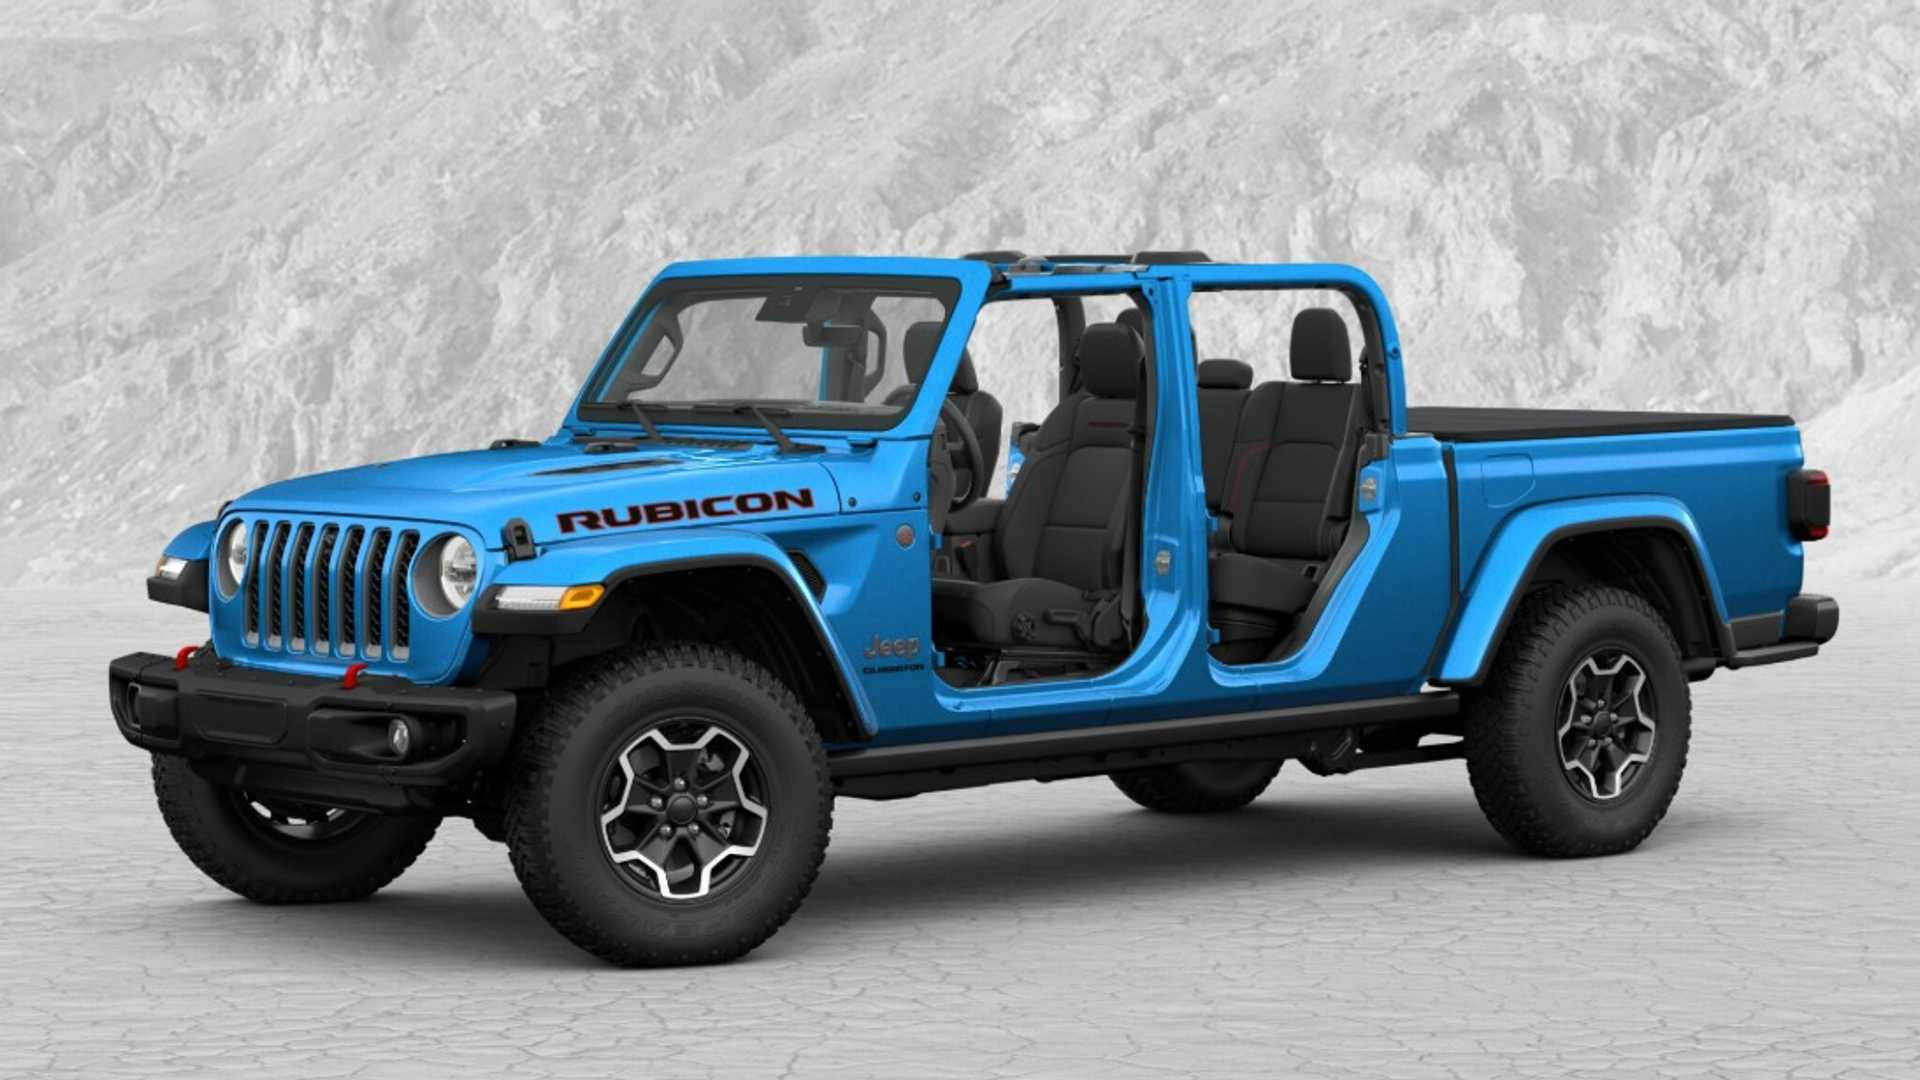 40 Best 2020 Jeep Gladiator Color Options Price